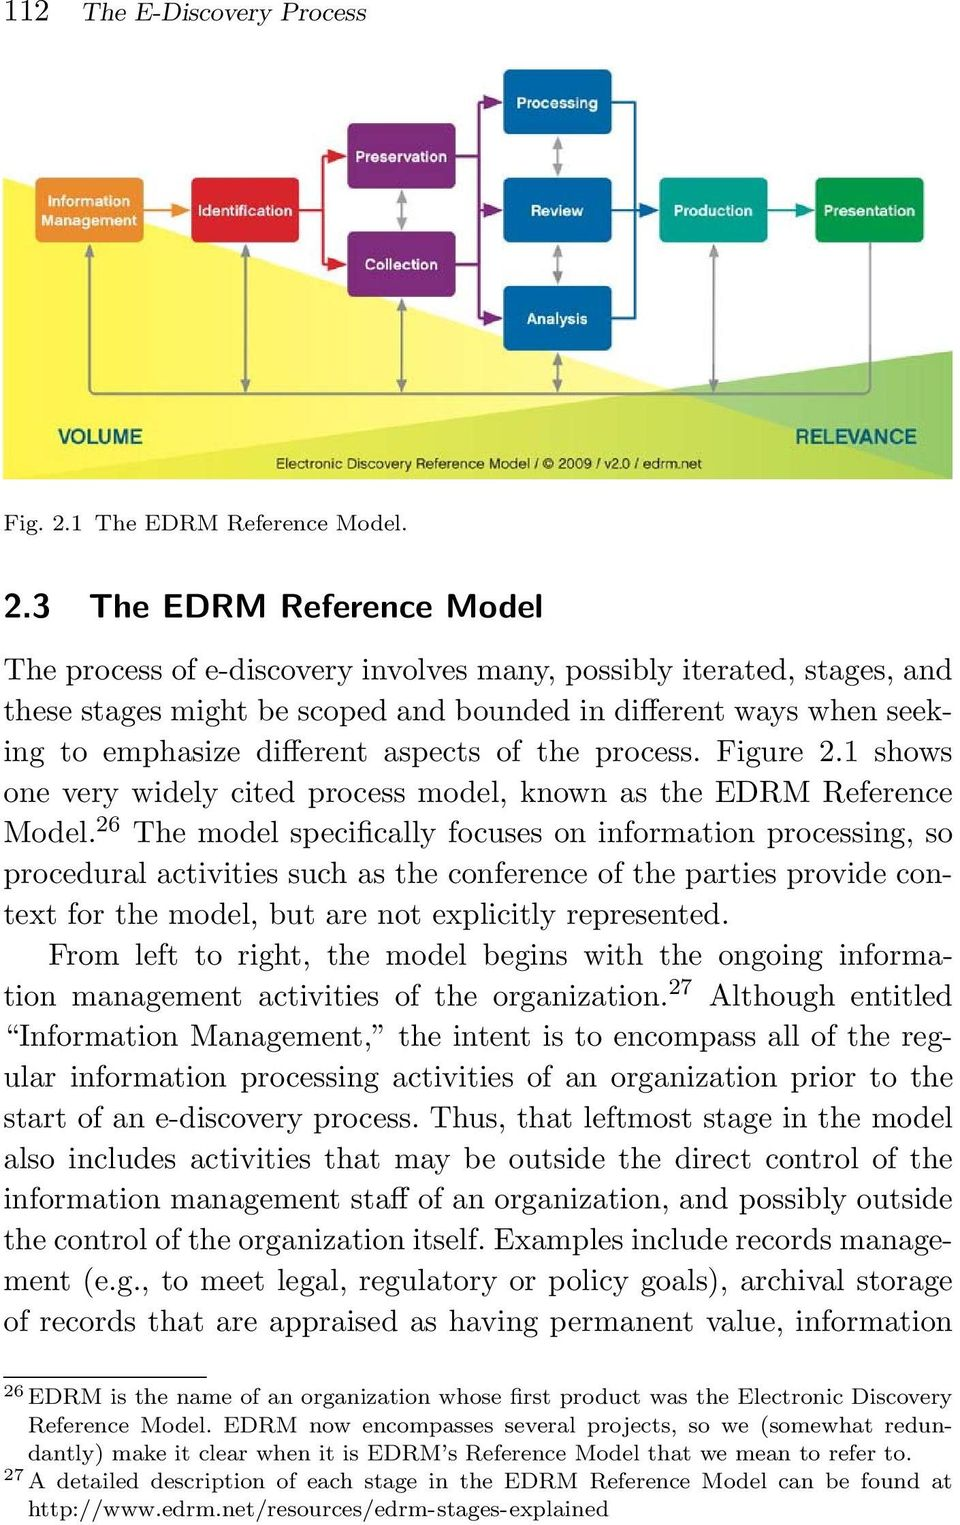 3 The EDRM Reference Model The process of e-discovery involves many, possibly iterated, stages, and these stages might be scoped and bounded in different ways when seeking to emphasize different